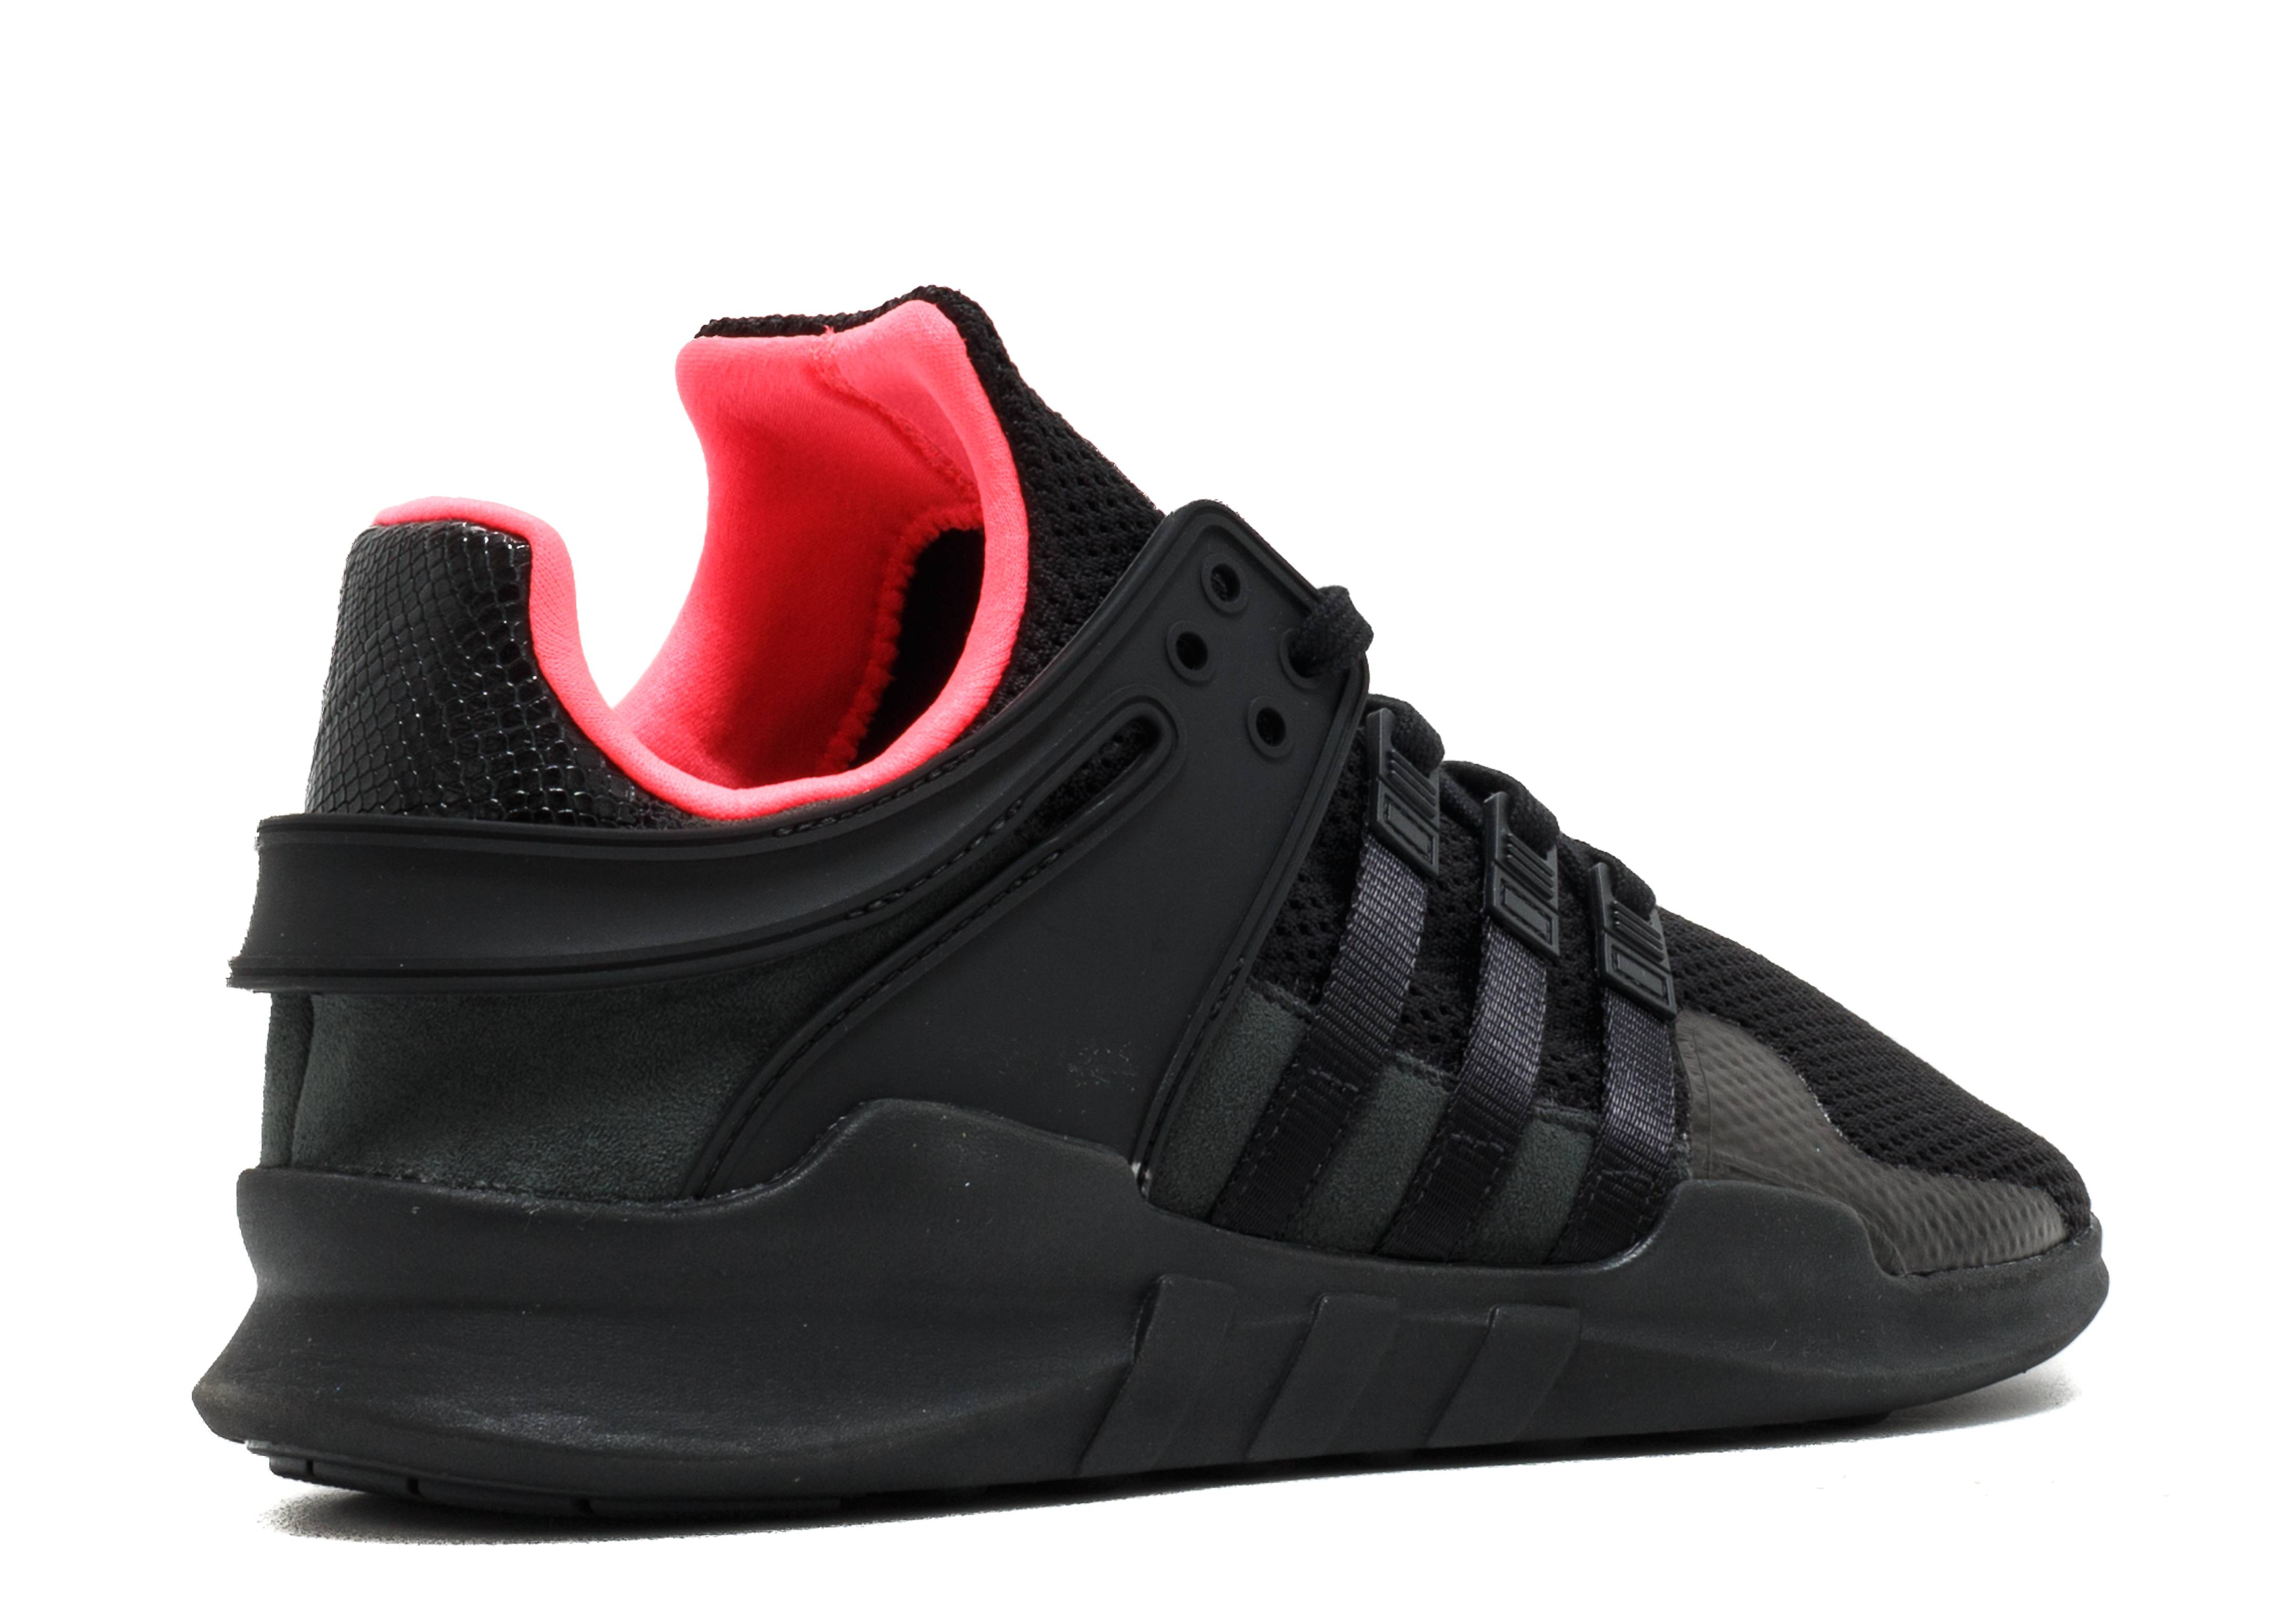 c1983a03682e EQT Support ADV - Adidas - bb1300 - black black turbo